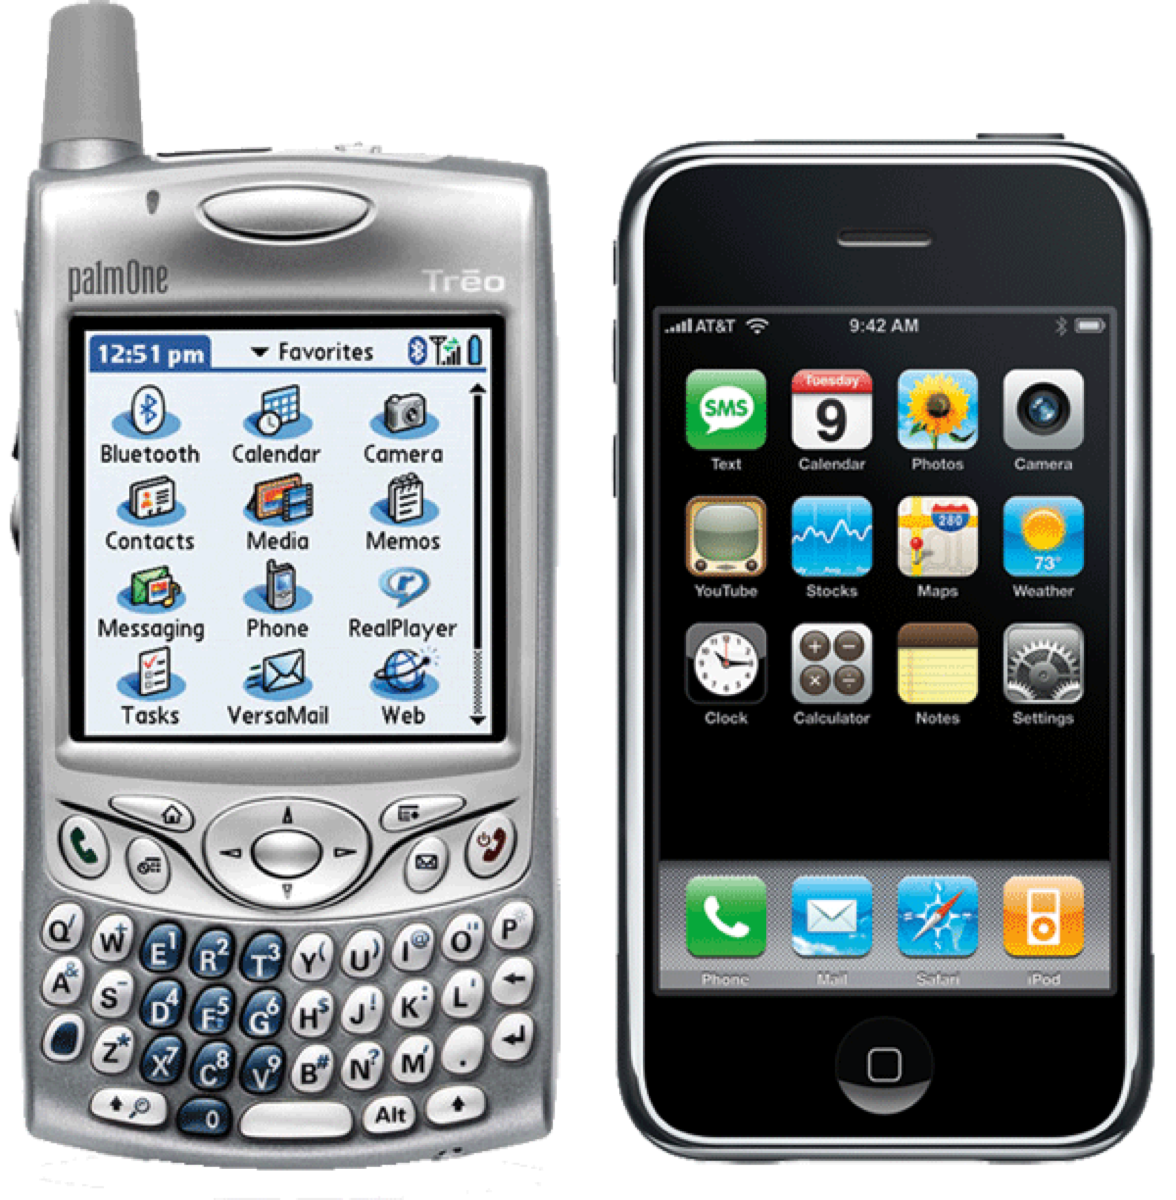 Palm treo compare review